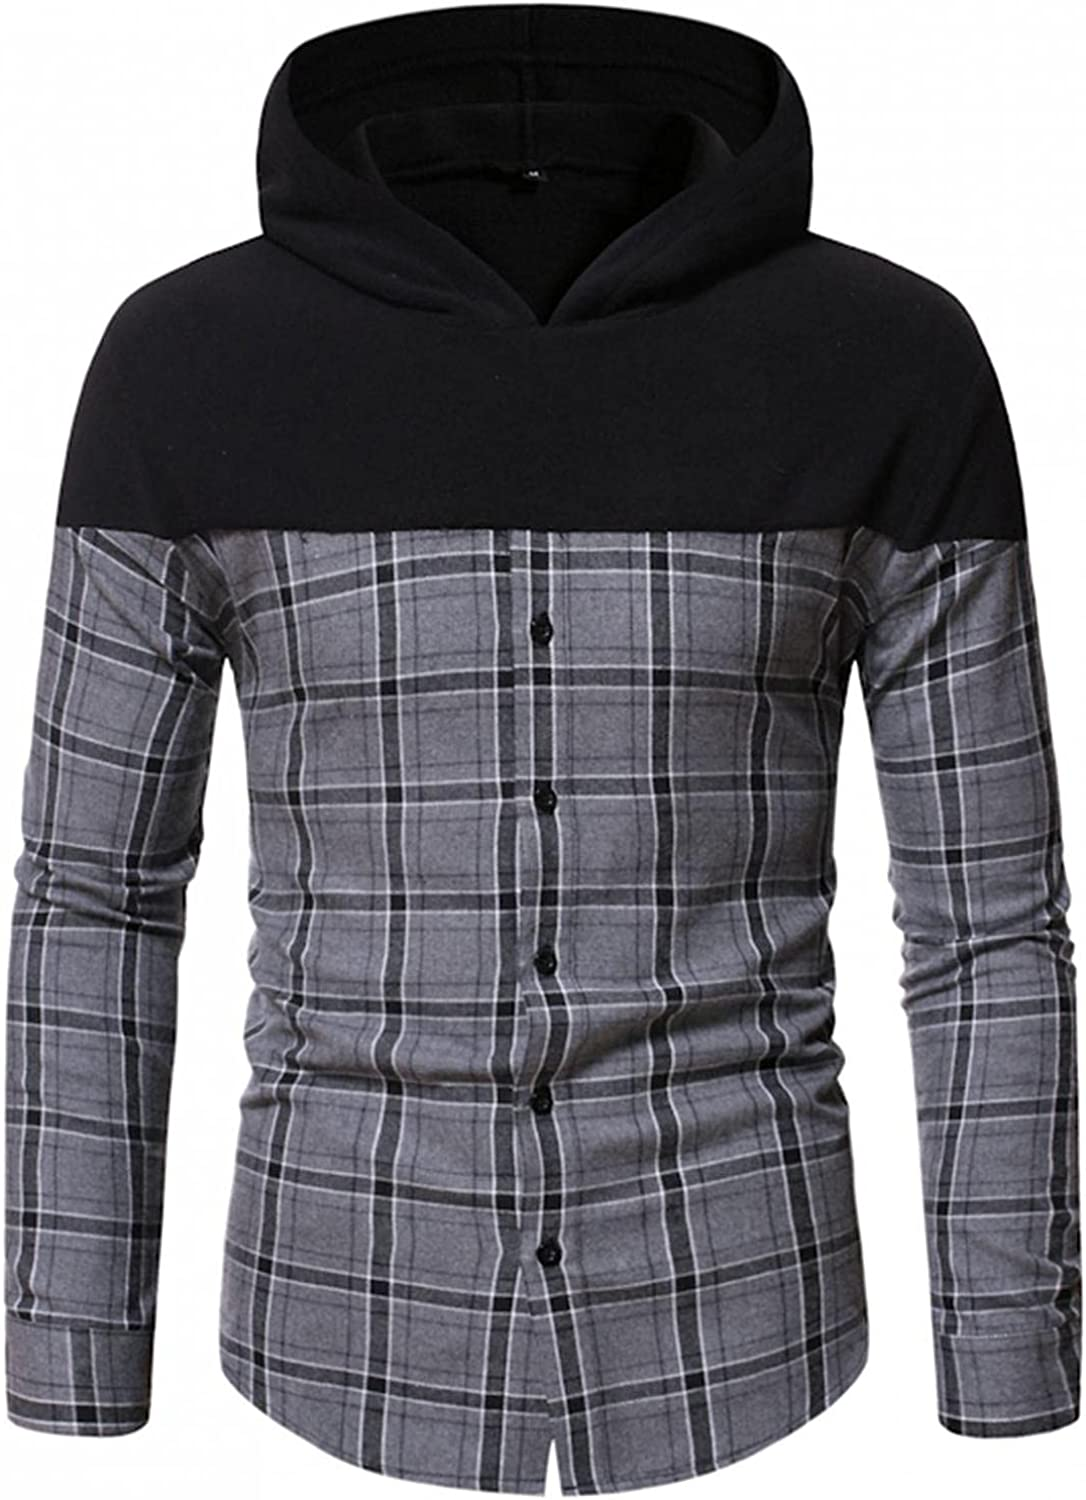 Aayomet Men's Hoodies Sweatshirts Patchwork Checked Button Casual Long Sleeve Hooded Pullover Tops Blouses Sweaters